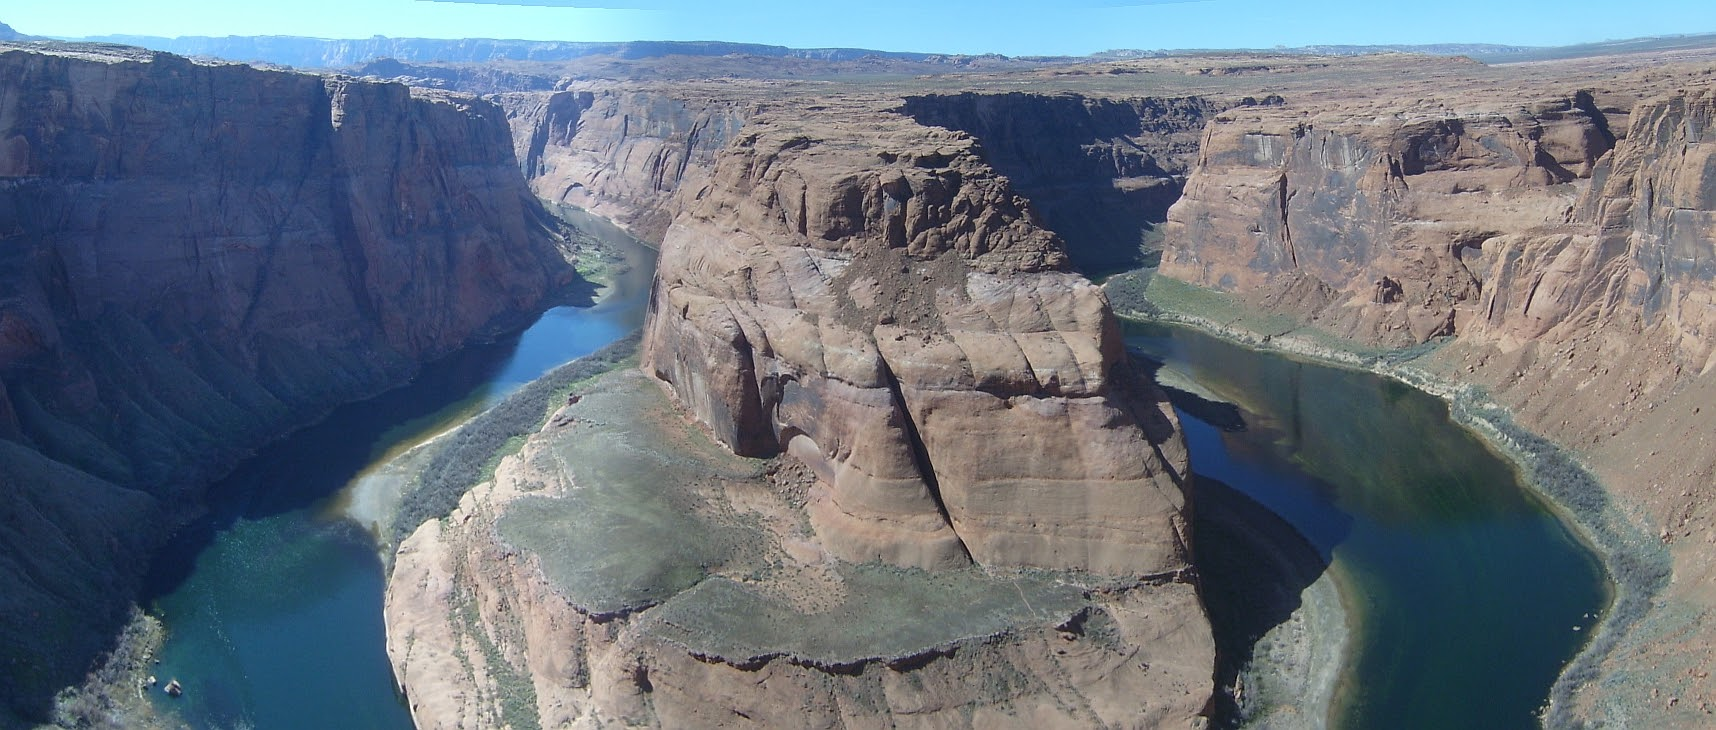 Entrenched meander of the Colorado River, downstream of Page, Arizona. High cliffs, that lead down to a river with narrow shores.